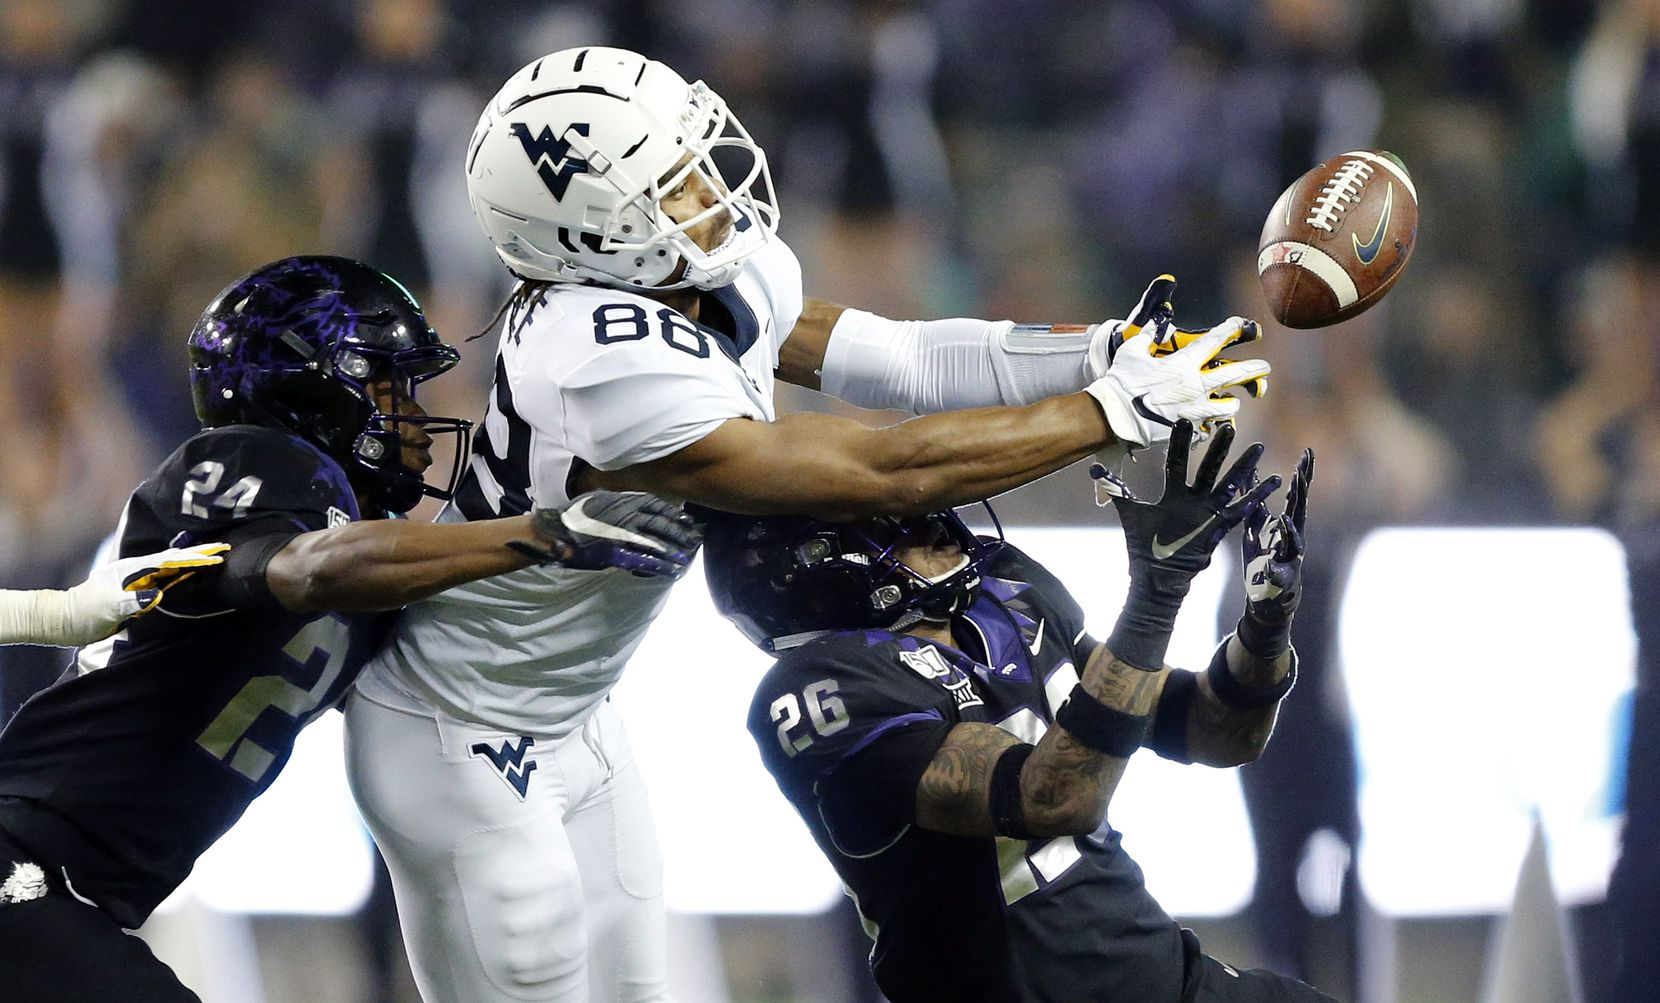 TCU Horned Frogs safety Vernon Scott (26) looks to pick off a tipped pass to West Virginia Mountaineers wide receiver Isaiah Esdale (88) at Amon G. Carter Stadium in Fort Worth, Friday, November 29, 2019. The pass fell incomplete but the Mountaineers picked up the late fourth quarter first down on a targeting call. The Horned Frogs lost, 20-17.